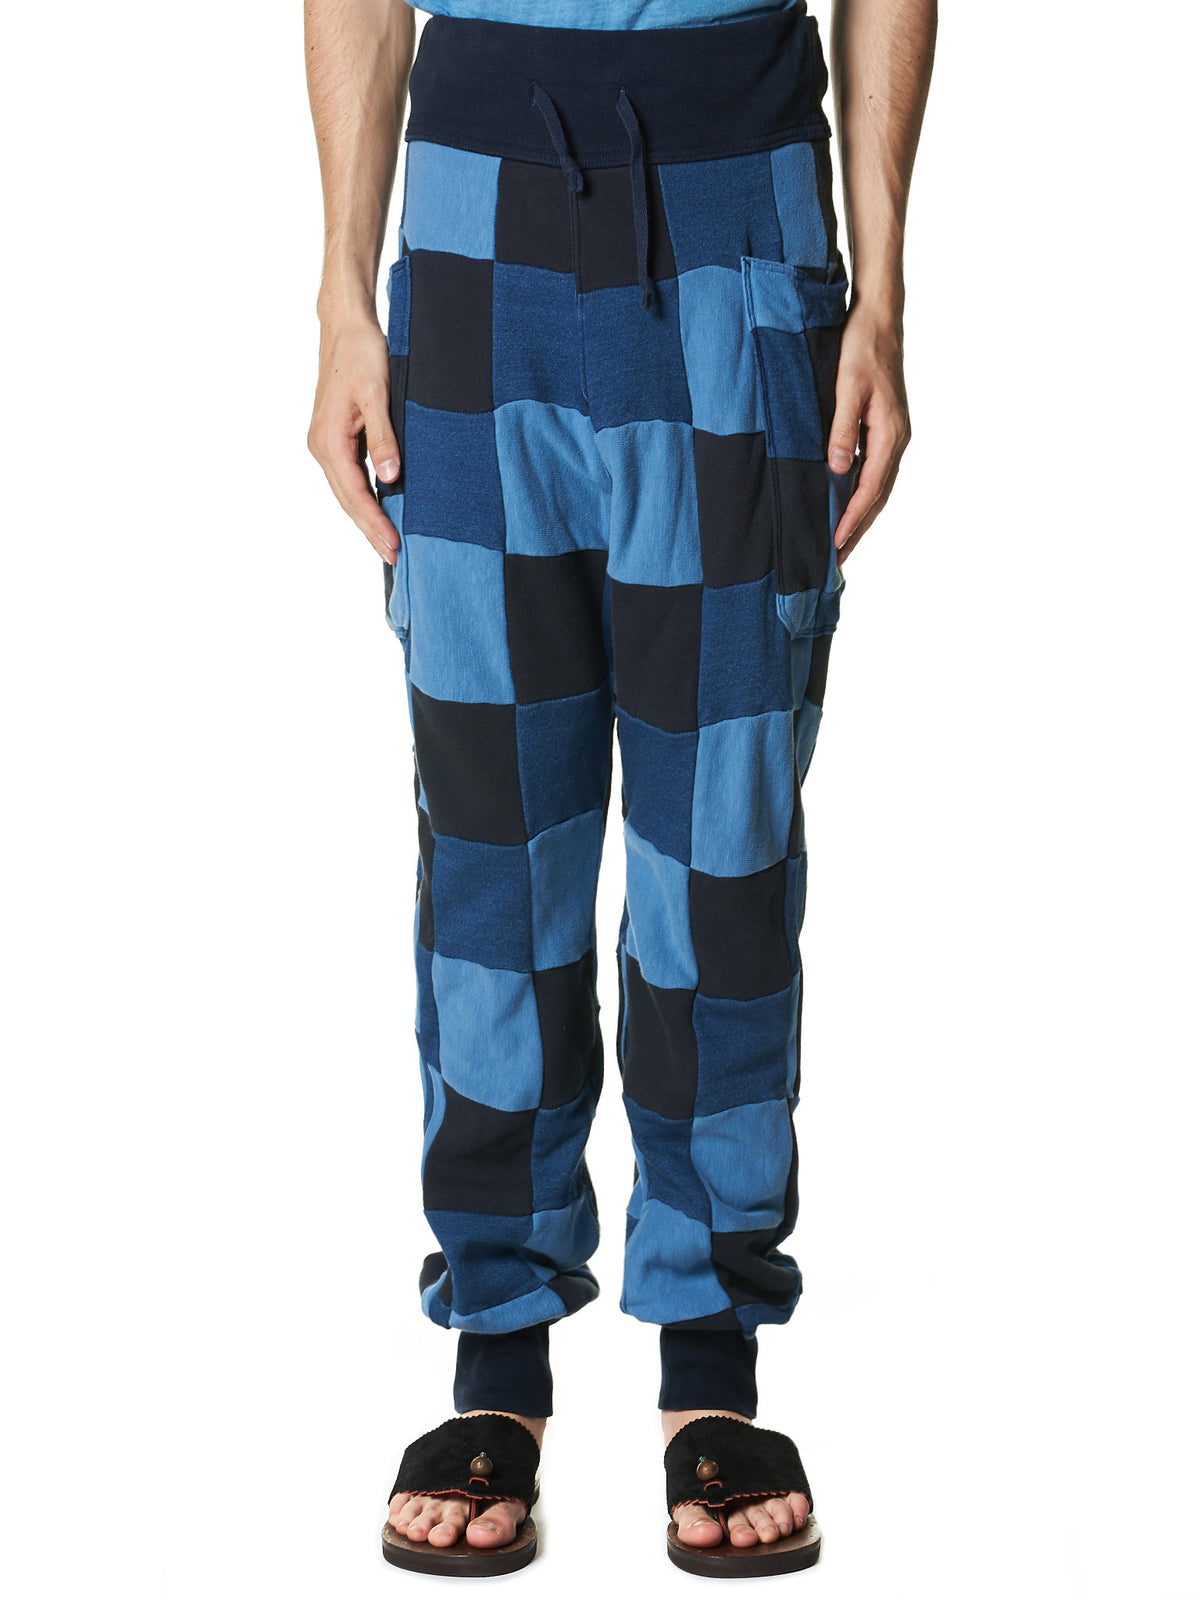 Checkered Patchwork Sweatpants (K1412LP72 INDIGO) - H. Lorenzo